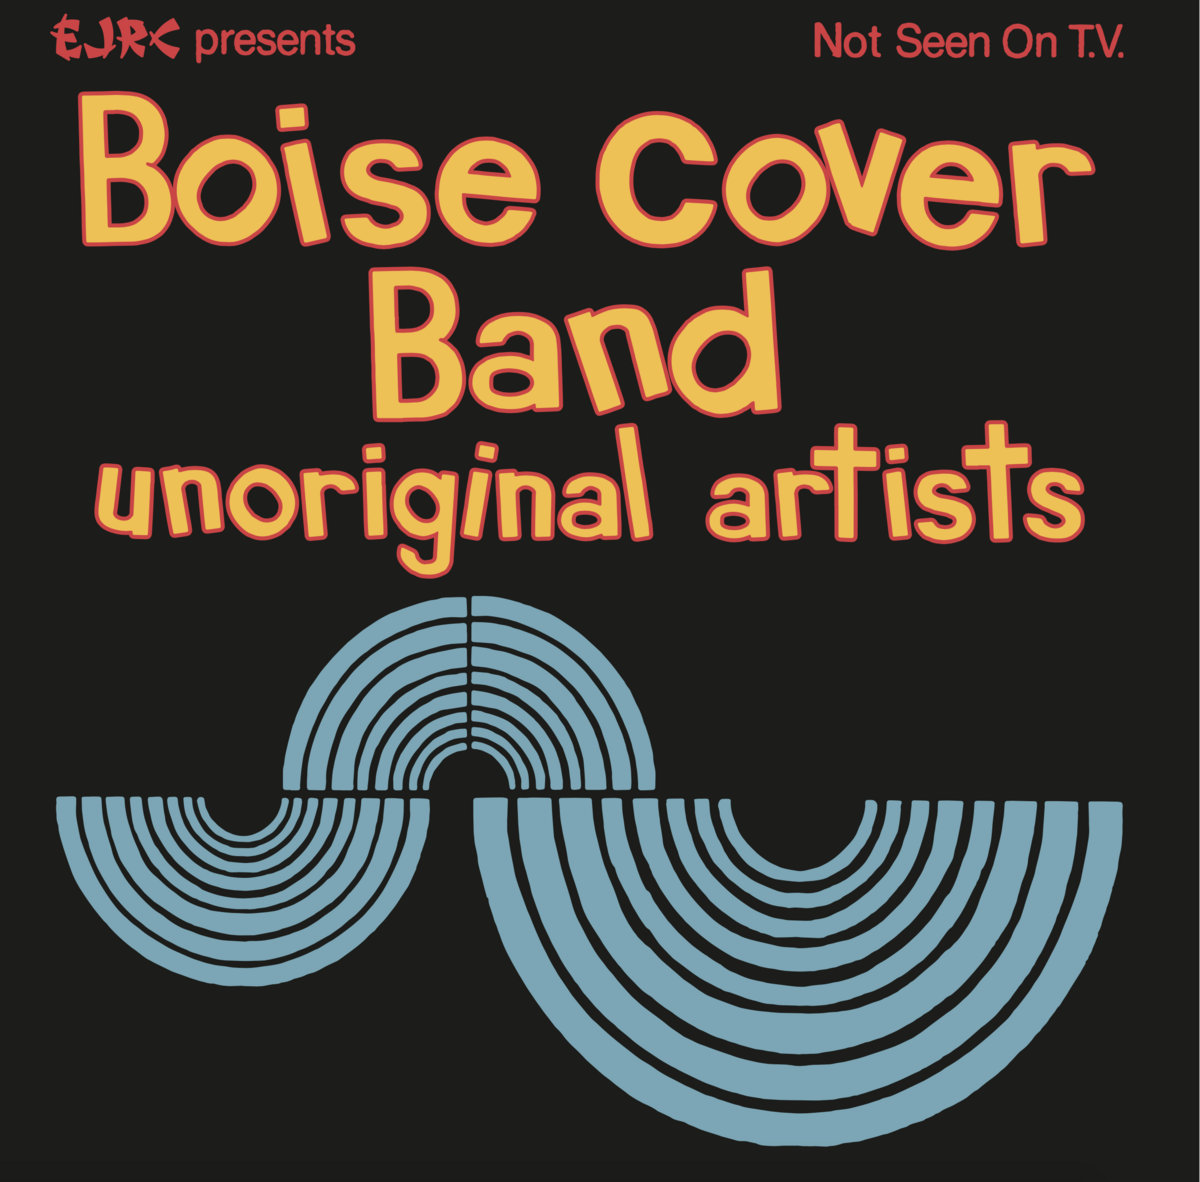 Boise Cover Band Unoriginal Artists